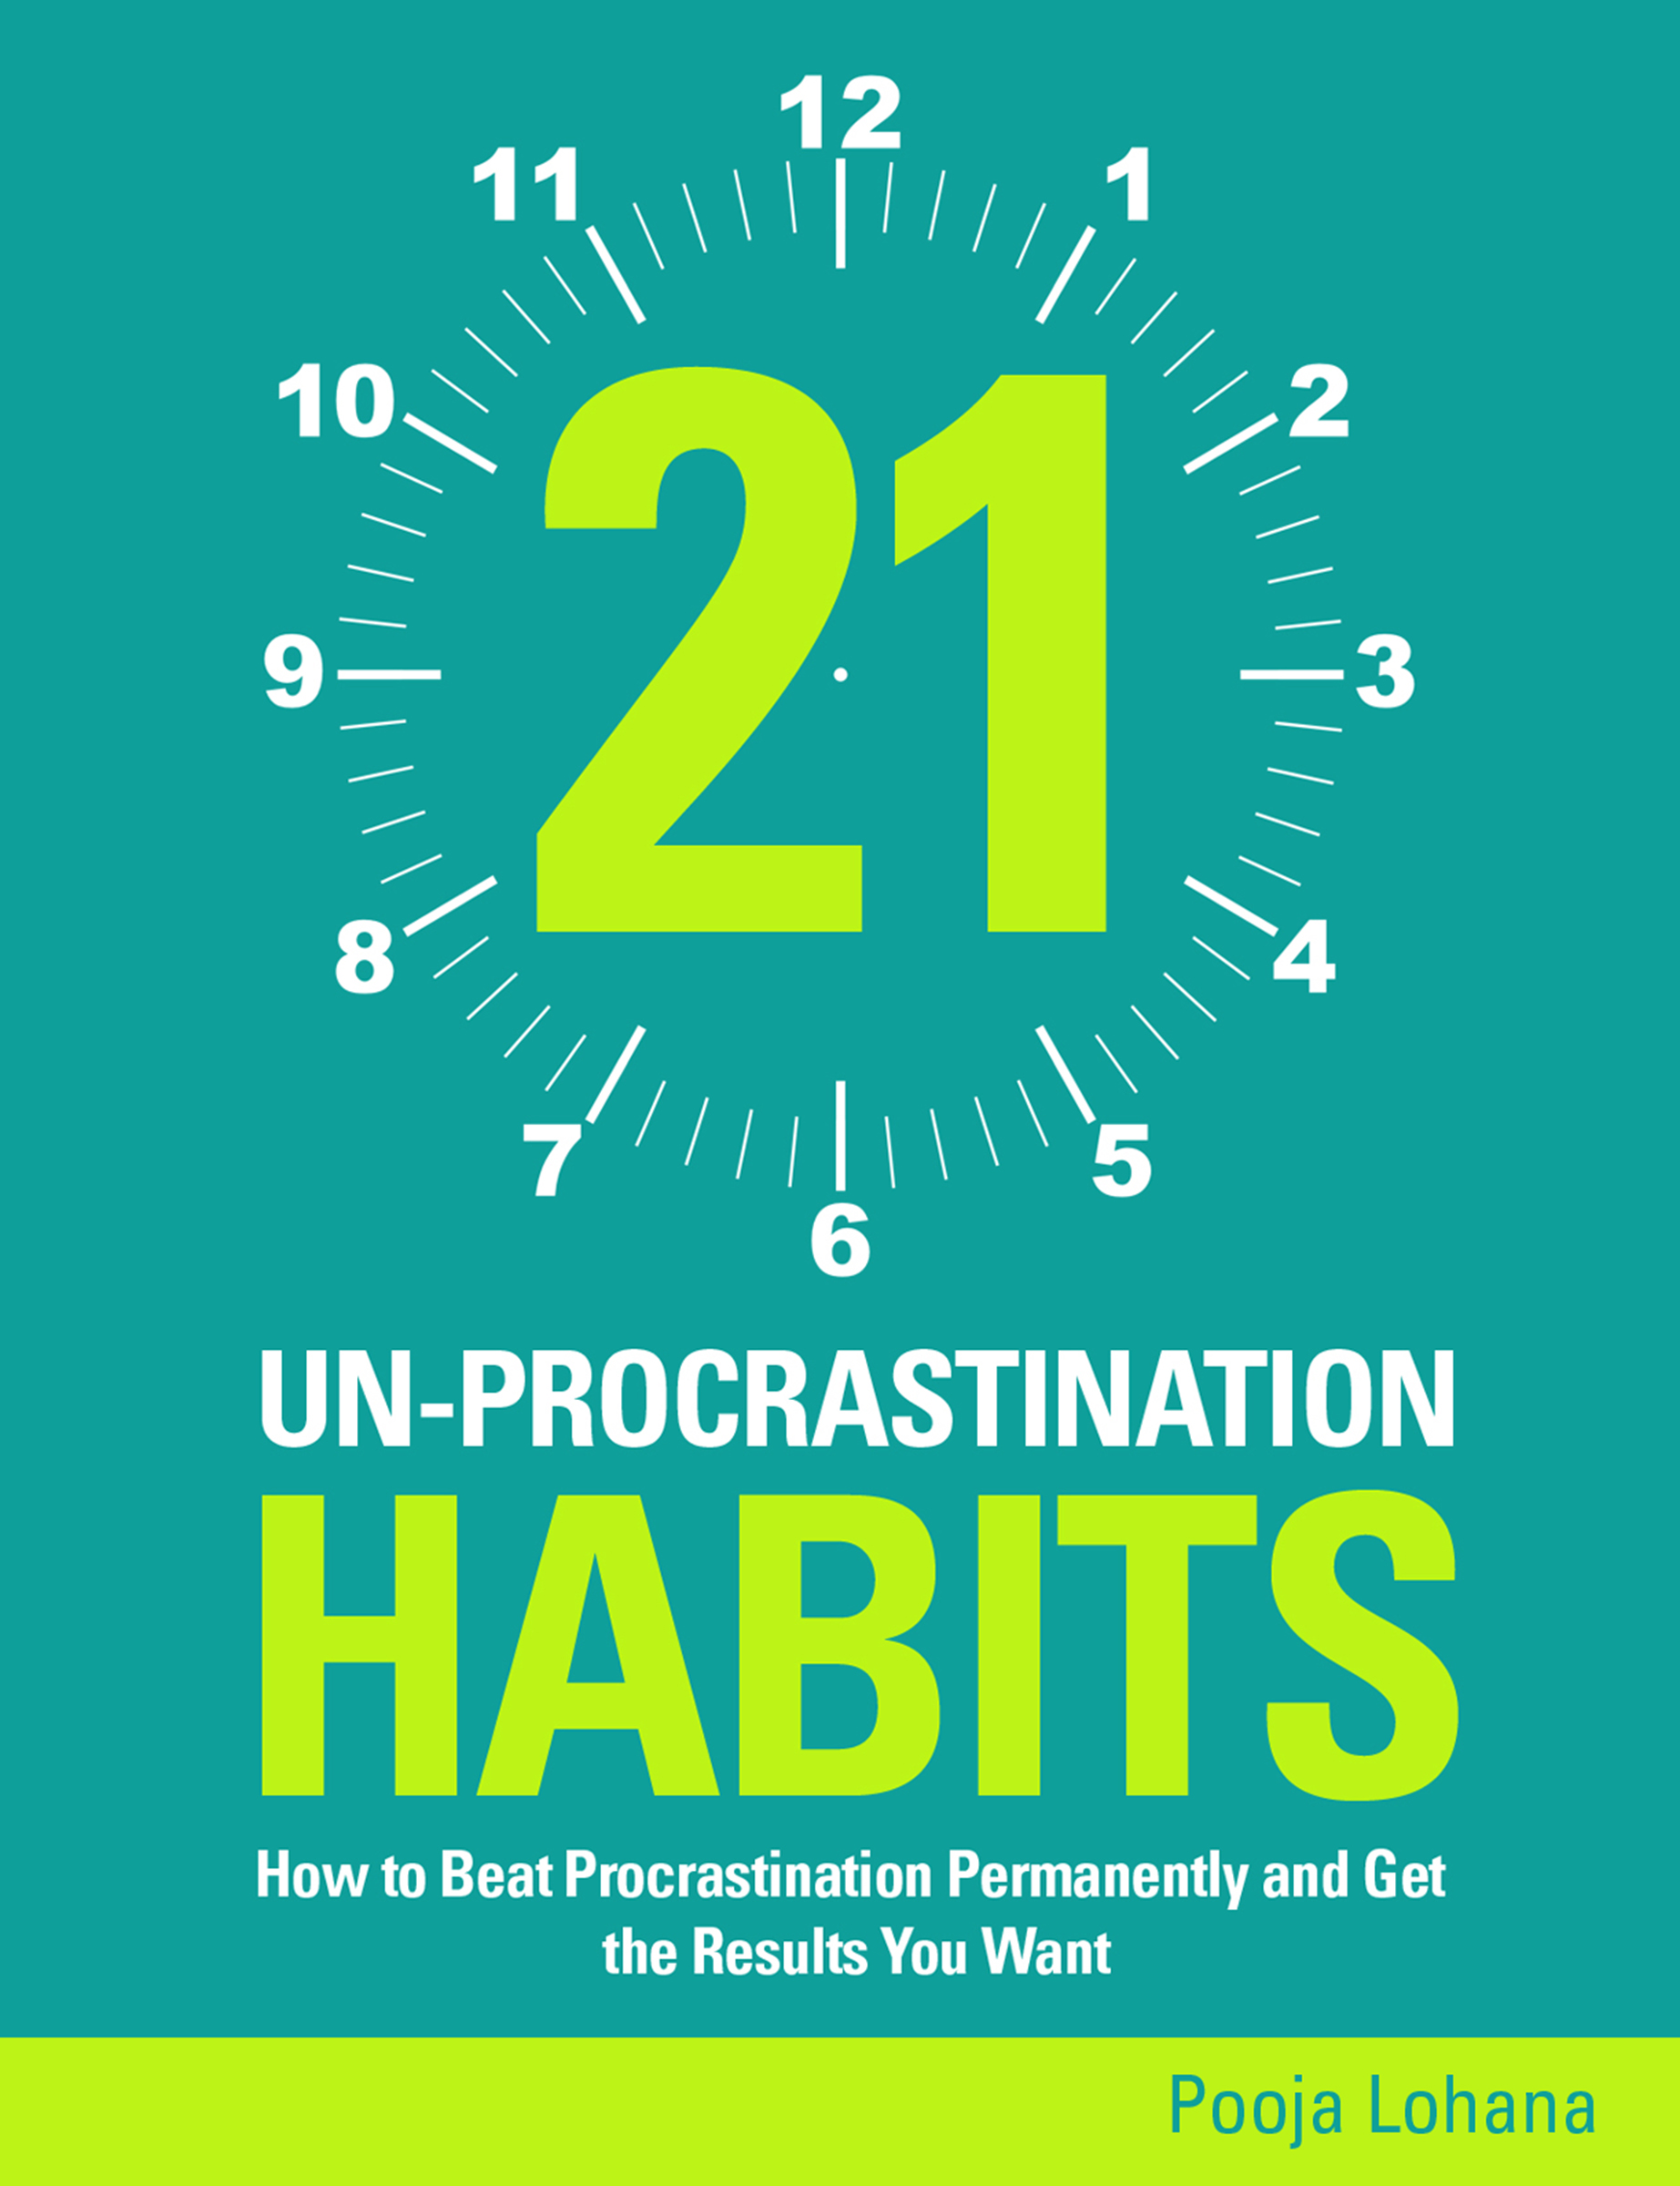 How to Beat Procrastination Permanently